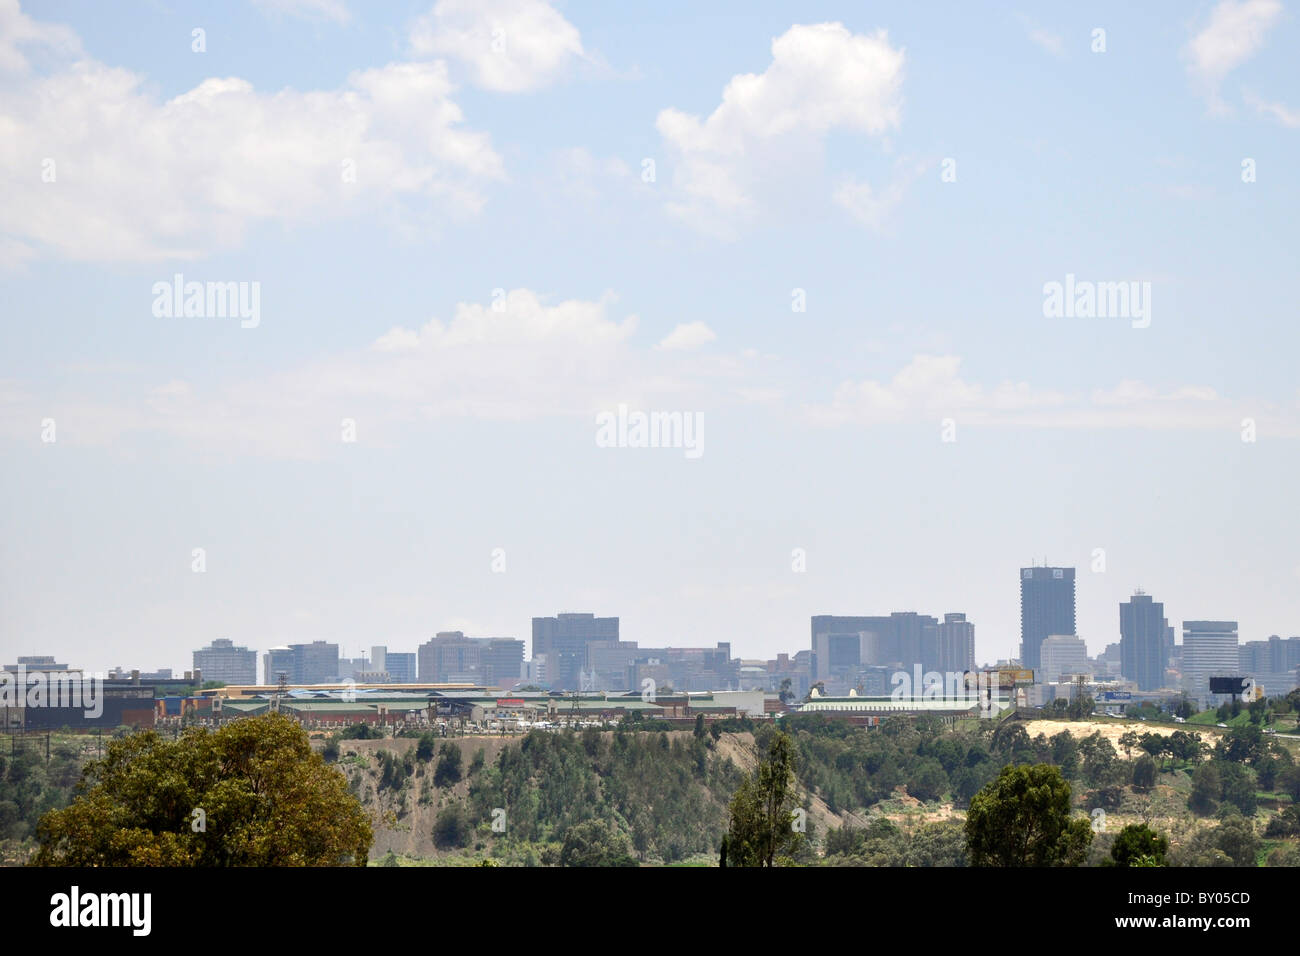 Johannesburg, South Africa Stock Photo